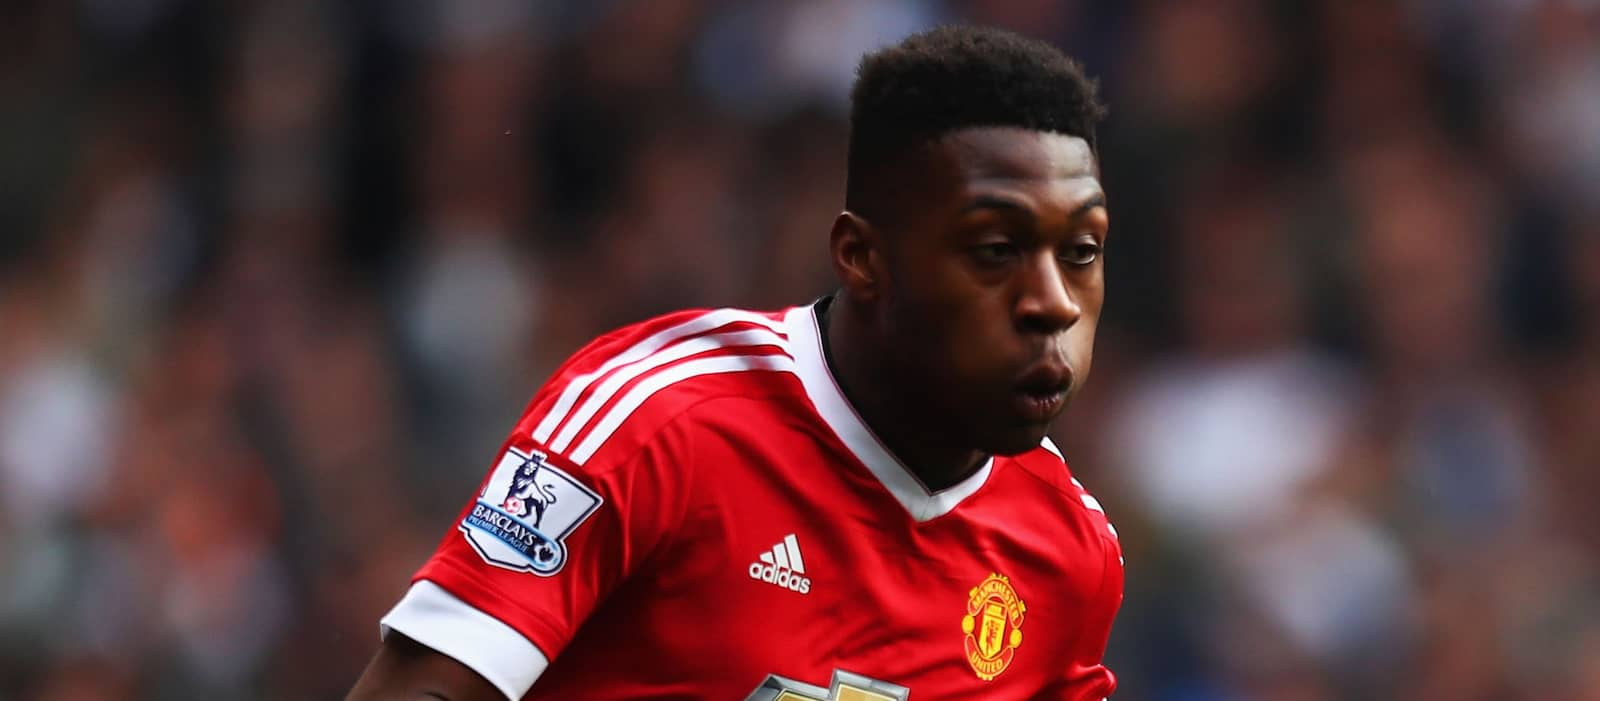 Timothy Fosu-Mensah set to sign contract extension – report